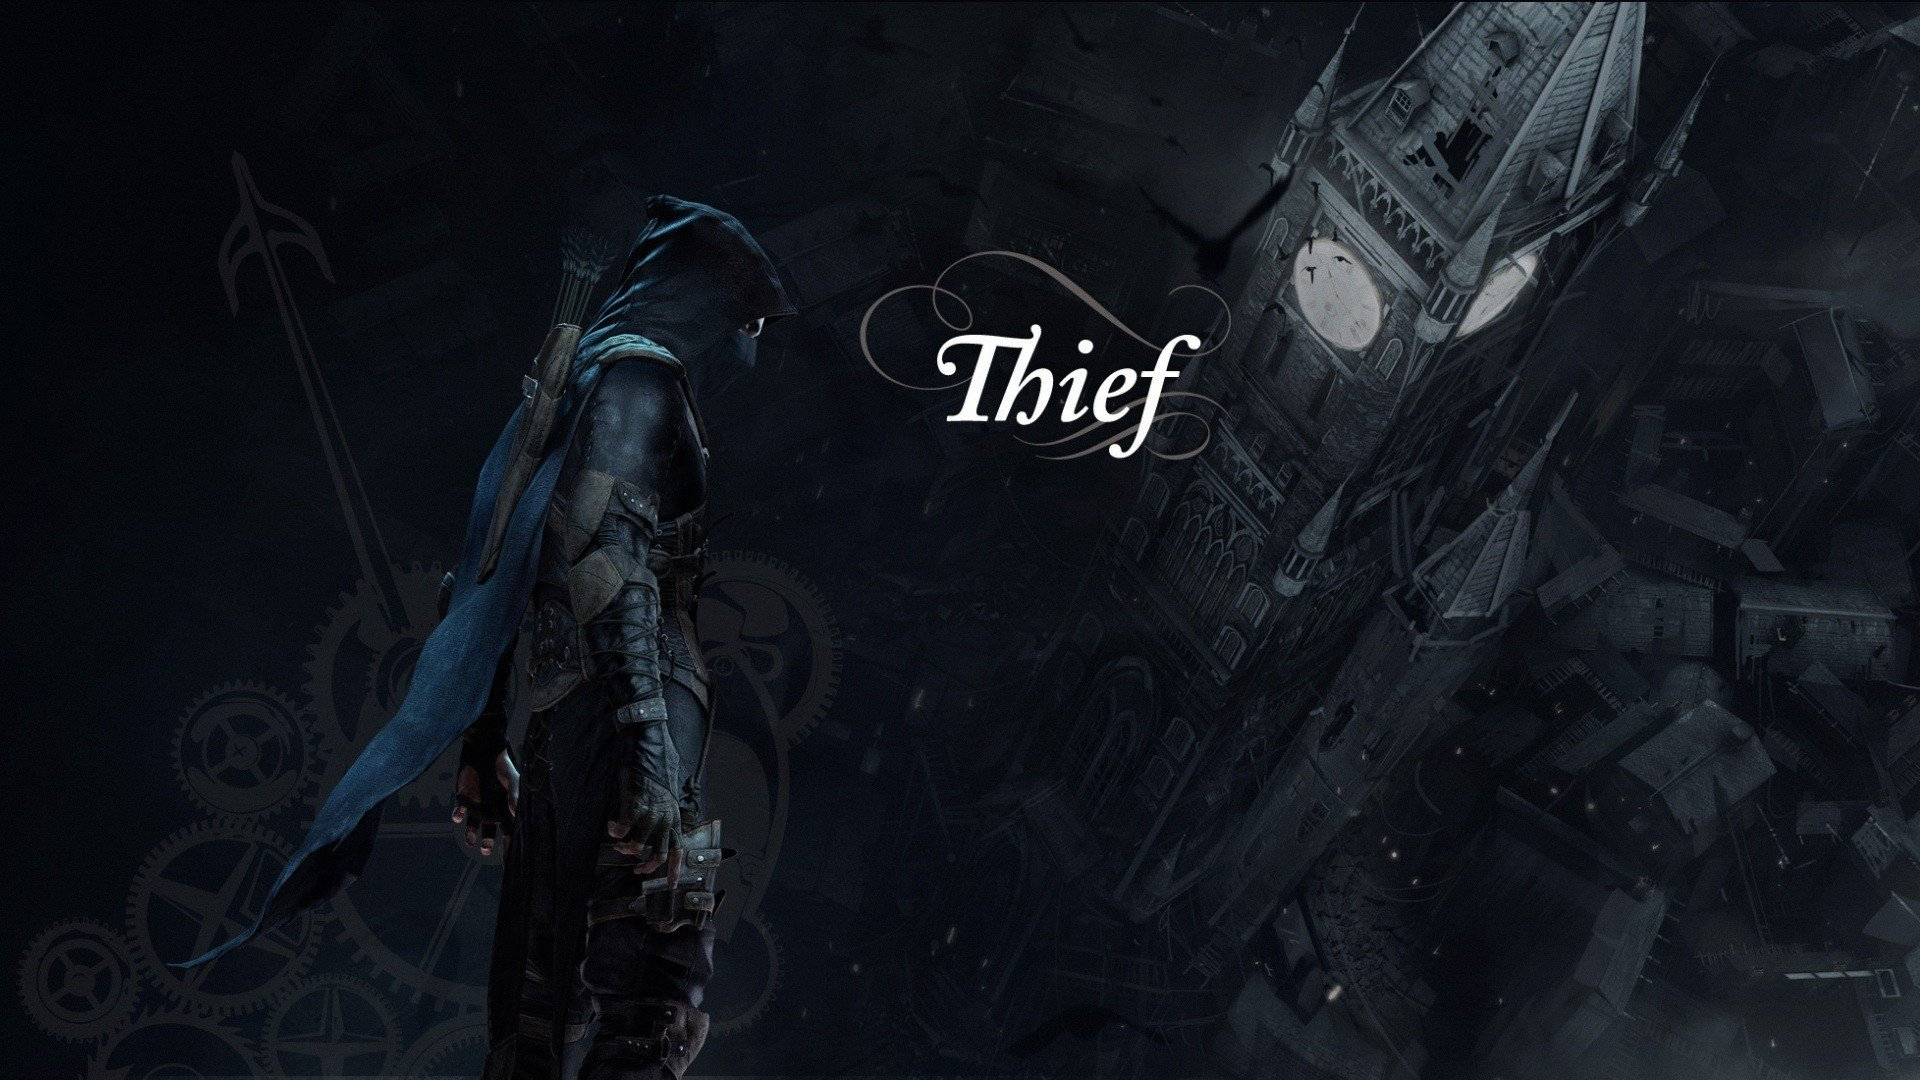 Fantasy art thief - photo#12